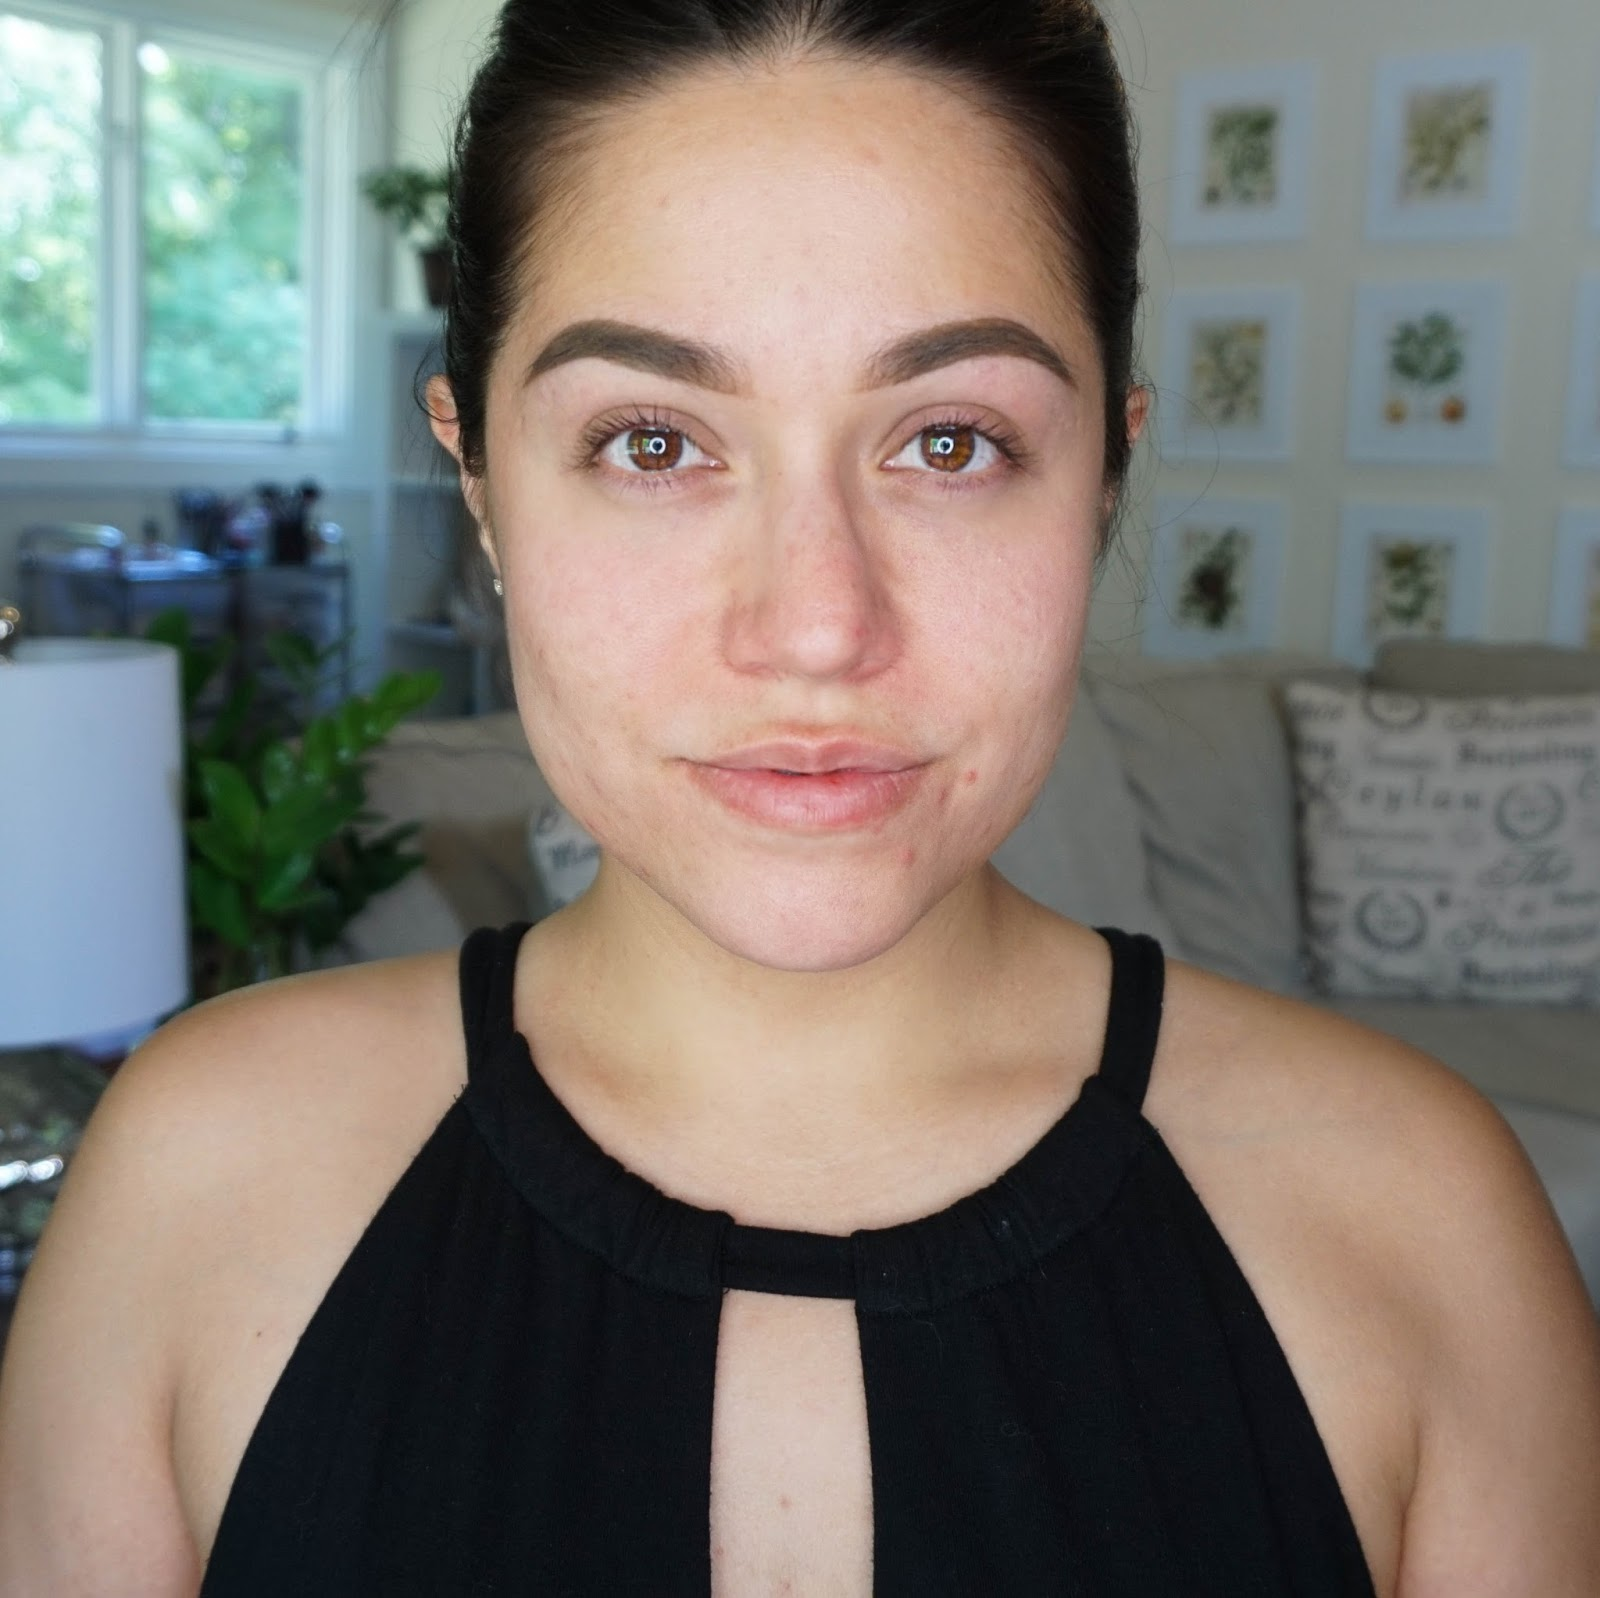 Infallible Pro-Glow Foundation by L'Oreal #19